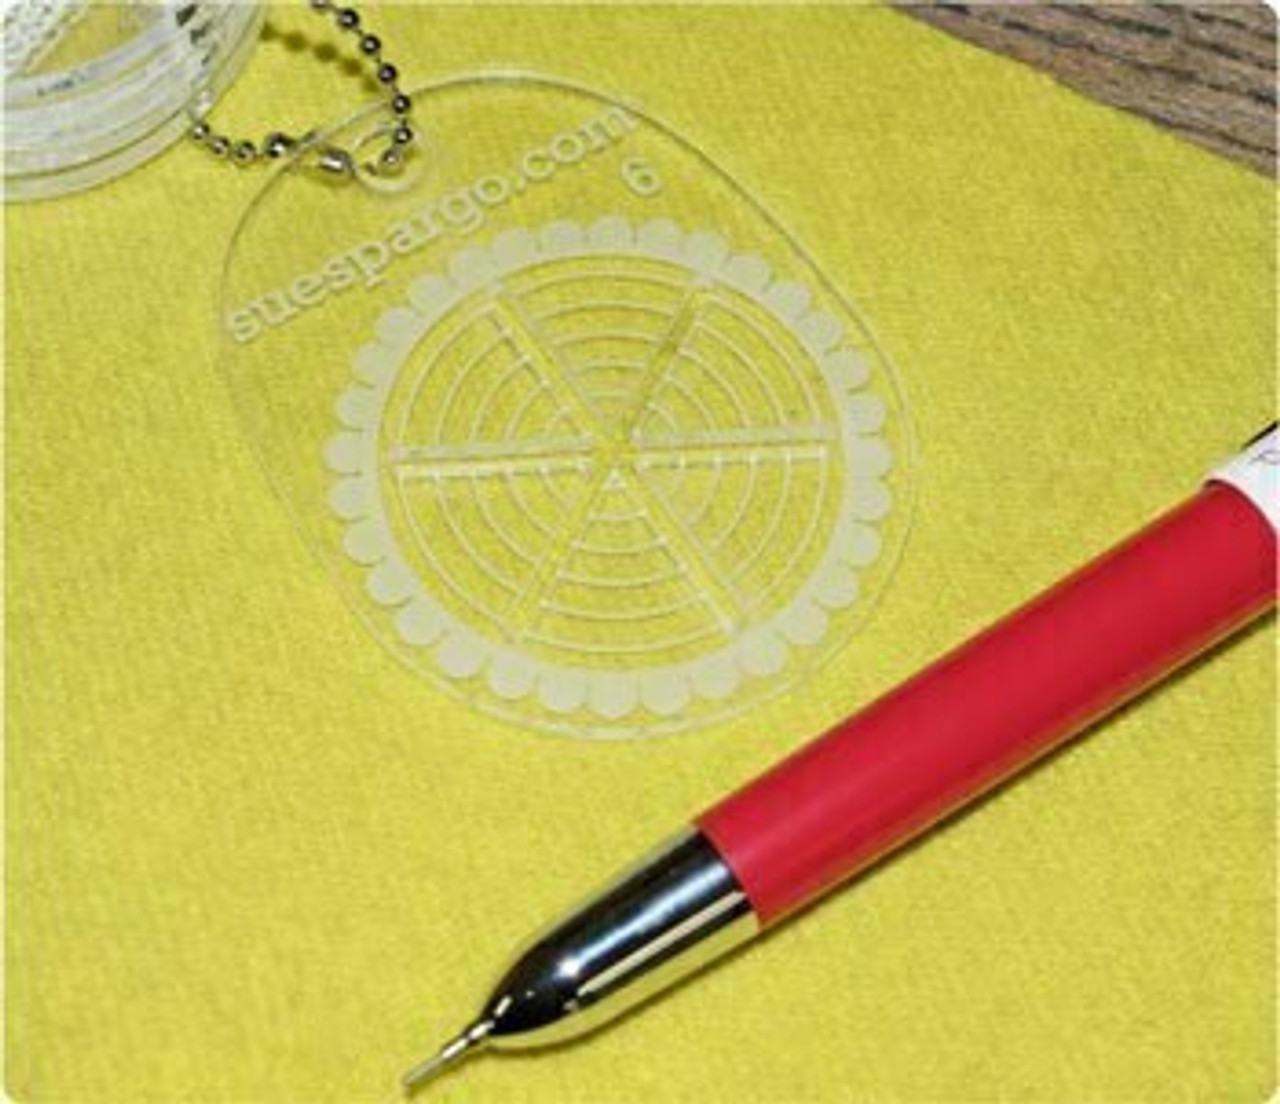 First determine where you'd like your stitch to appear and how many spokes you'd like it to have. Remove the guide from the chain or separate it from the others to place it on your piece.